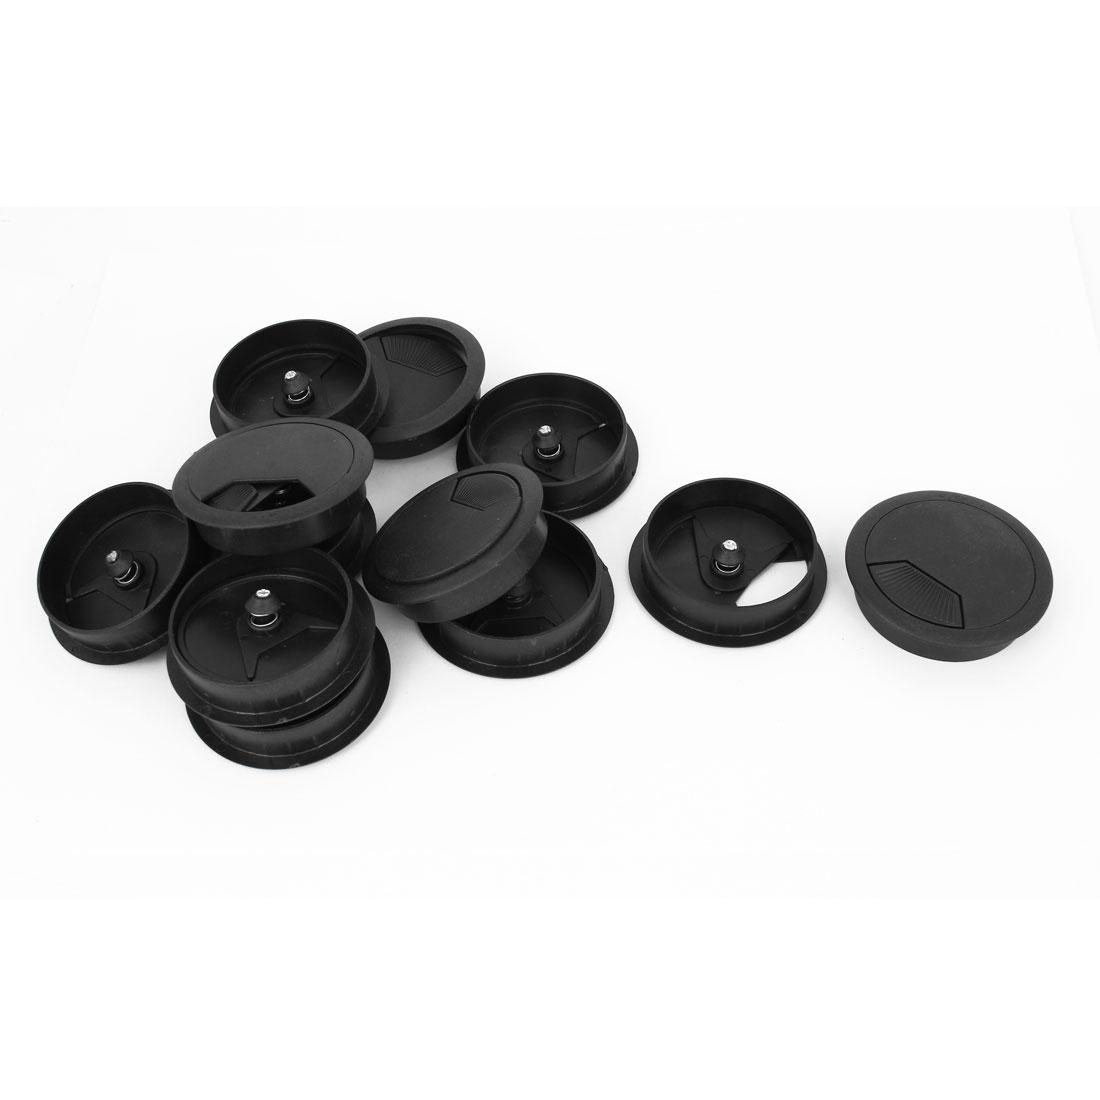 12pcs 60mm Dia Black Plastic PC Computer Desk Table Grommet Cable Tidy Hole Cover